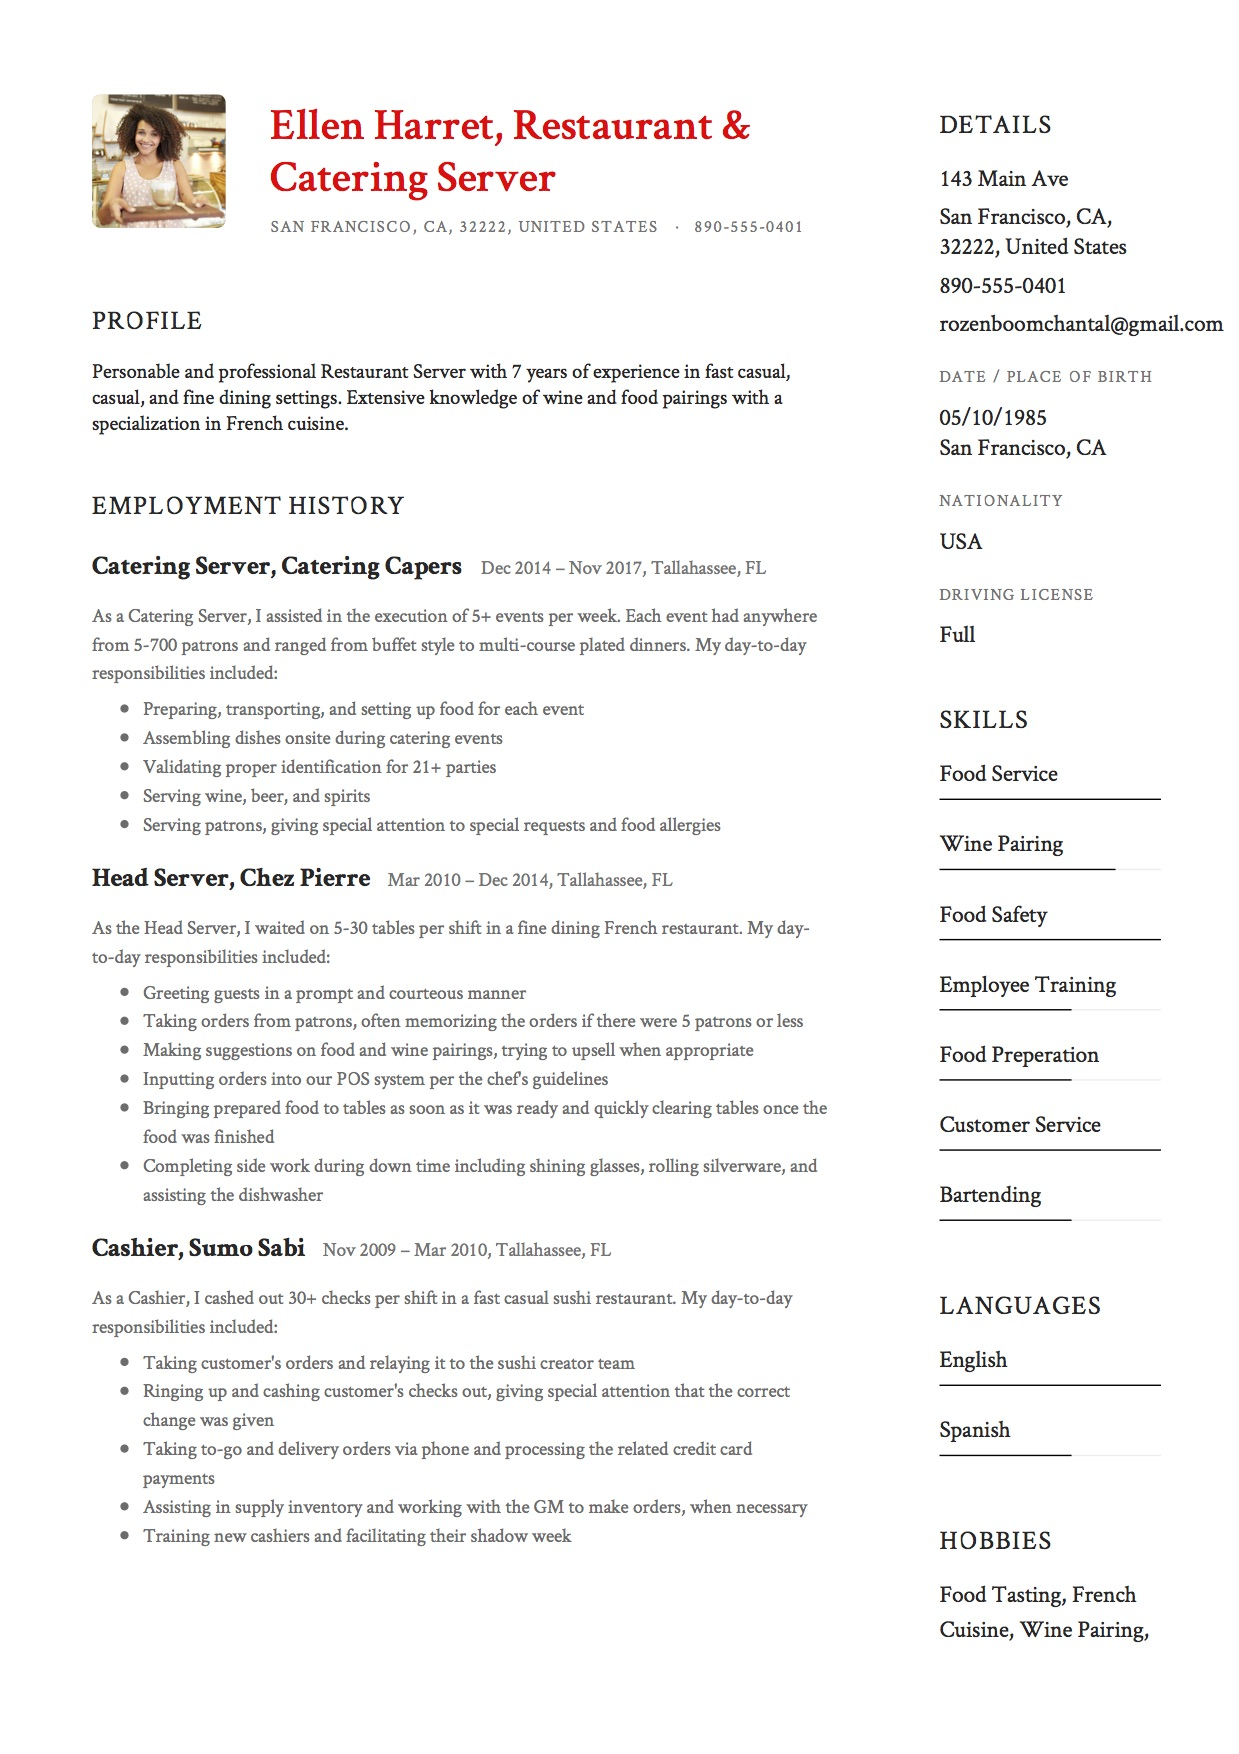 Resume Sample Catering Server  Catering Server Resume